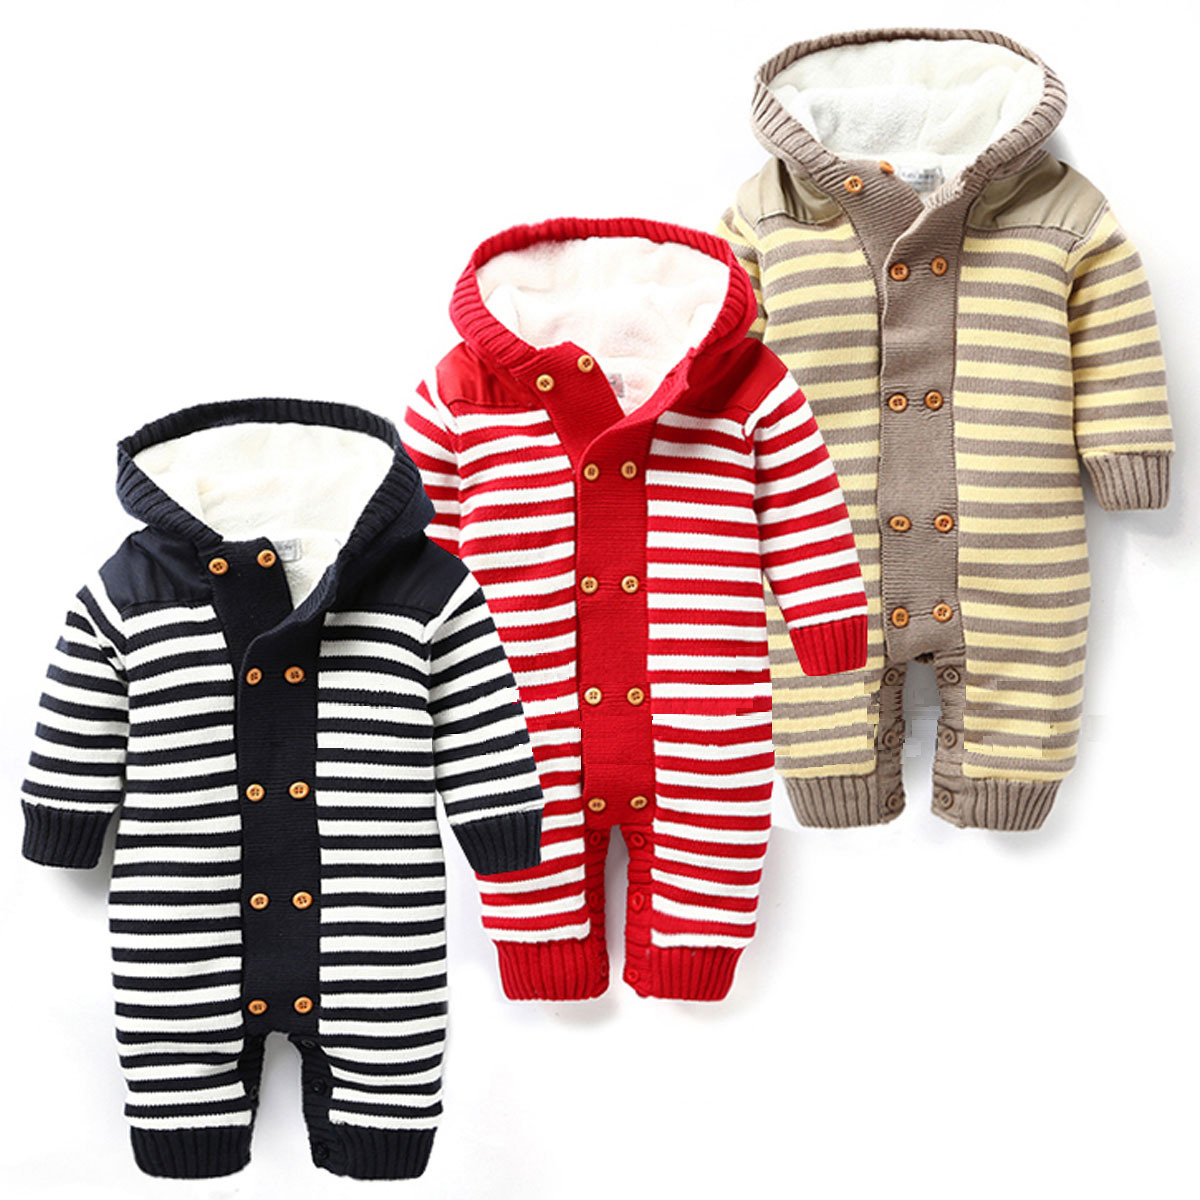 Baby Romper New Arrive Winter Soft Unisex black red yellow striped Knitting Thicken Hooded Warm Clothing Roupas De Bebe kids ruffle tie neck striped romper